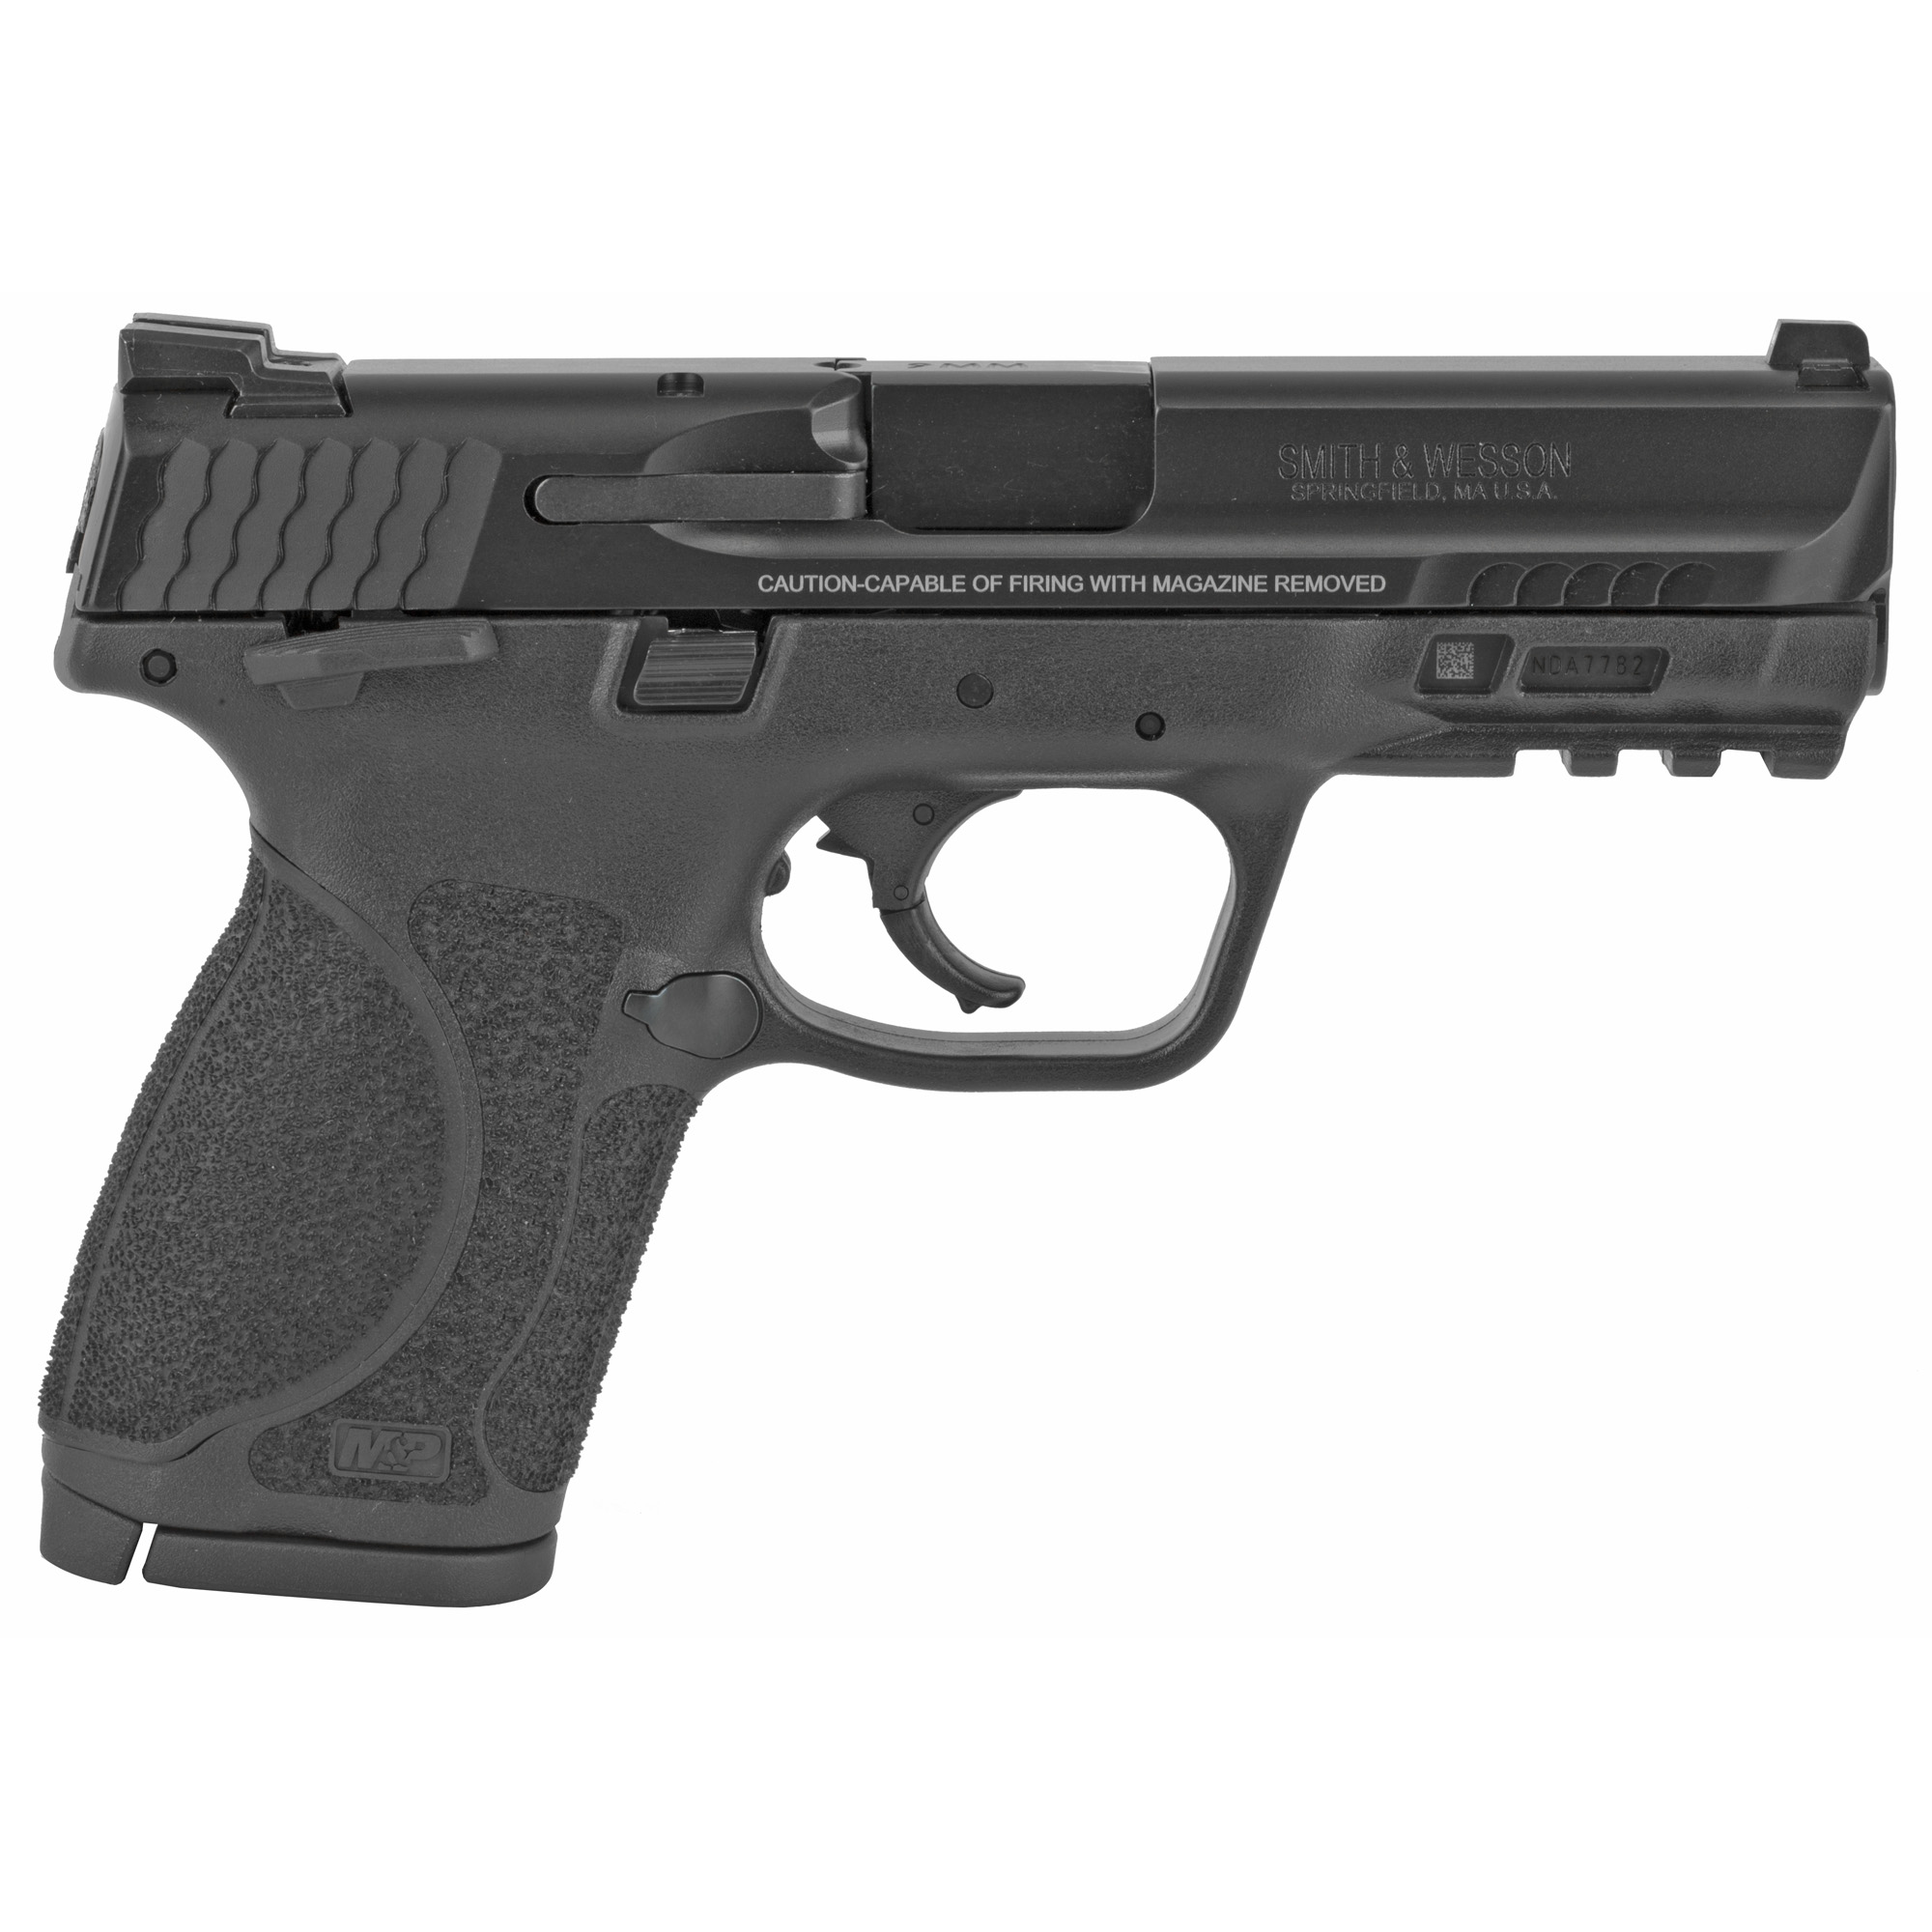 """Smith & Wesson M&P 2.0 Striker Fired 4"""" 9mm 10rd Fixed Sights - Black-img-1"""